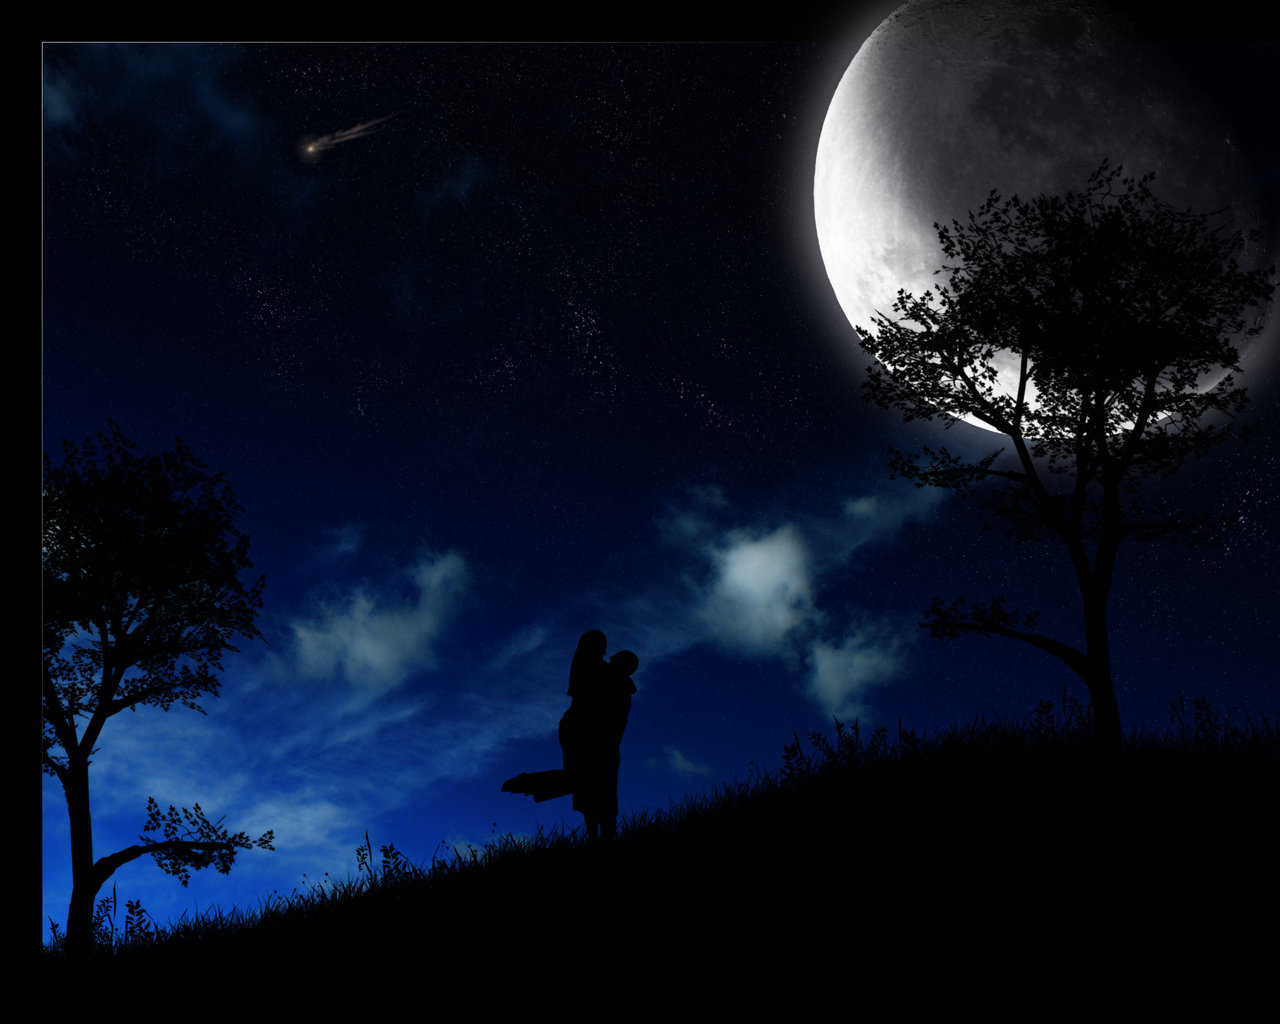 Abstract Night Moon Hd Wallpapers